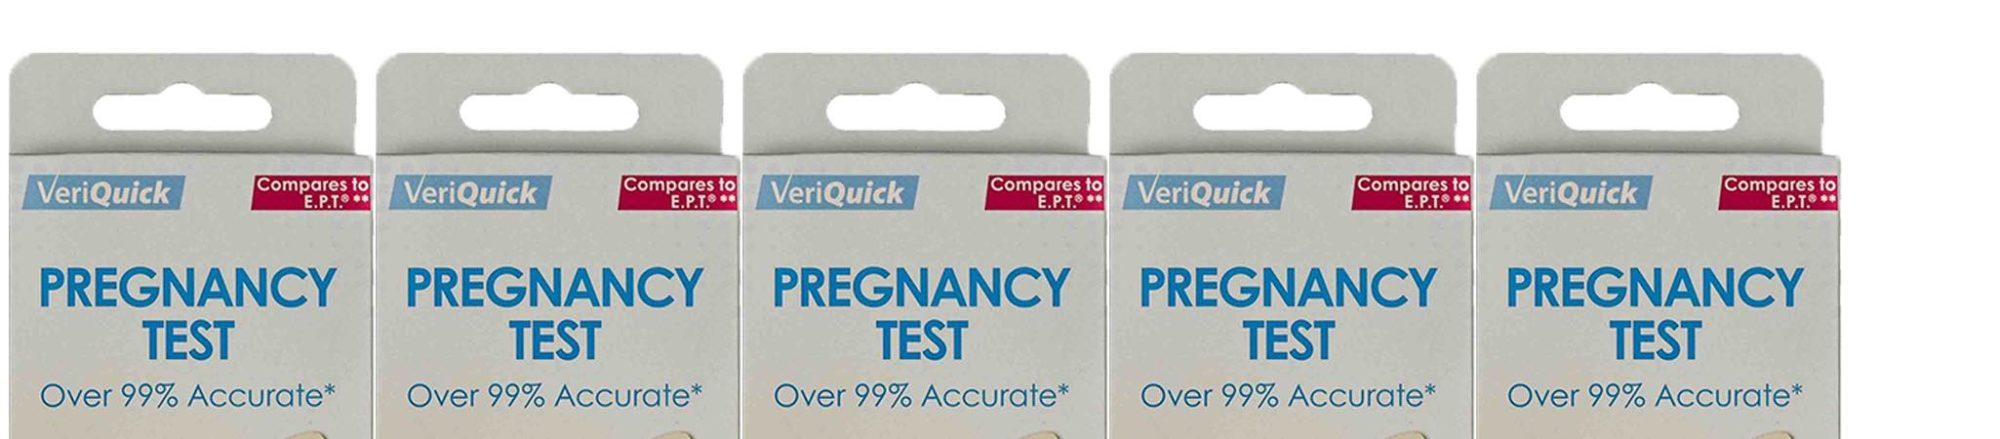 VeriQuick Pregnancy Test